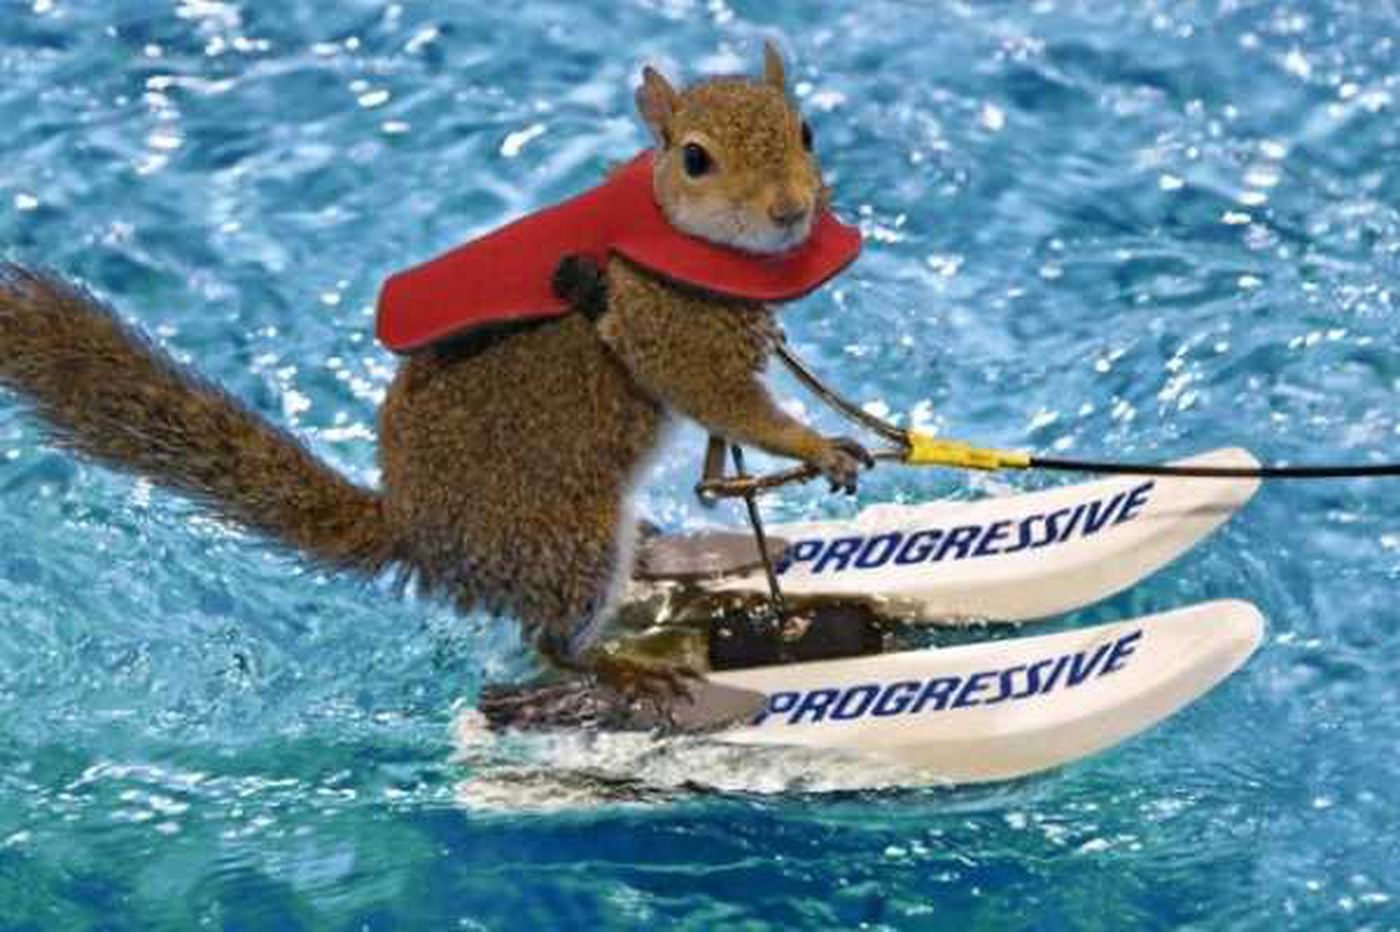 There's a water-skiing squirrel at the Philadelphia Boat Show this weekend